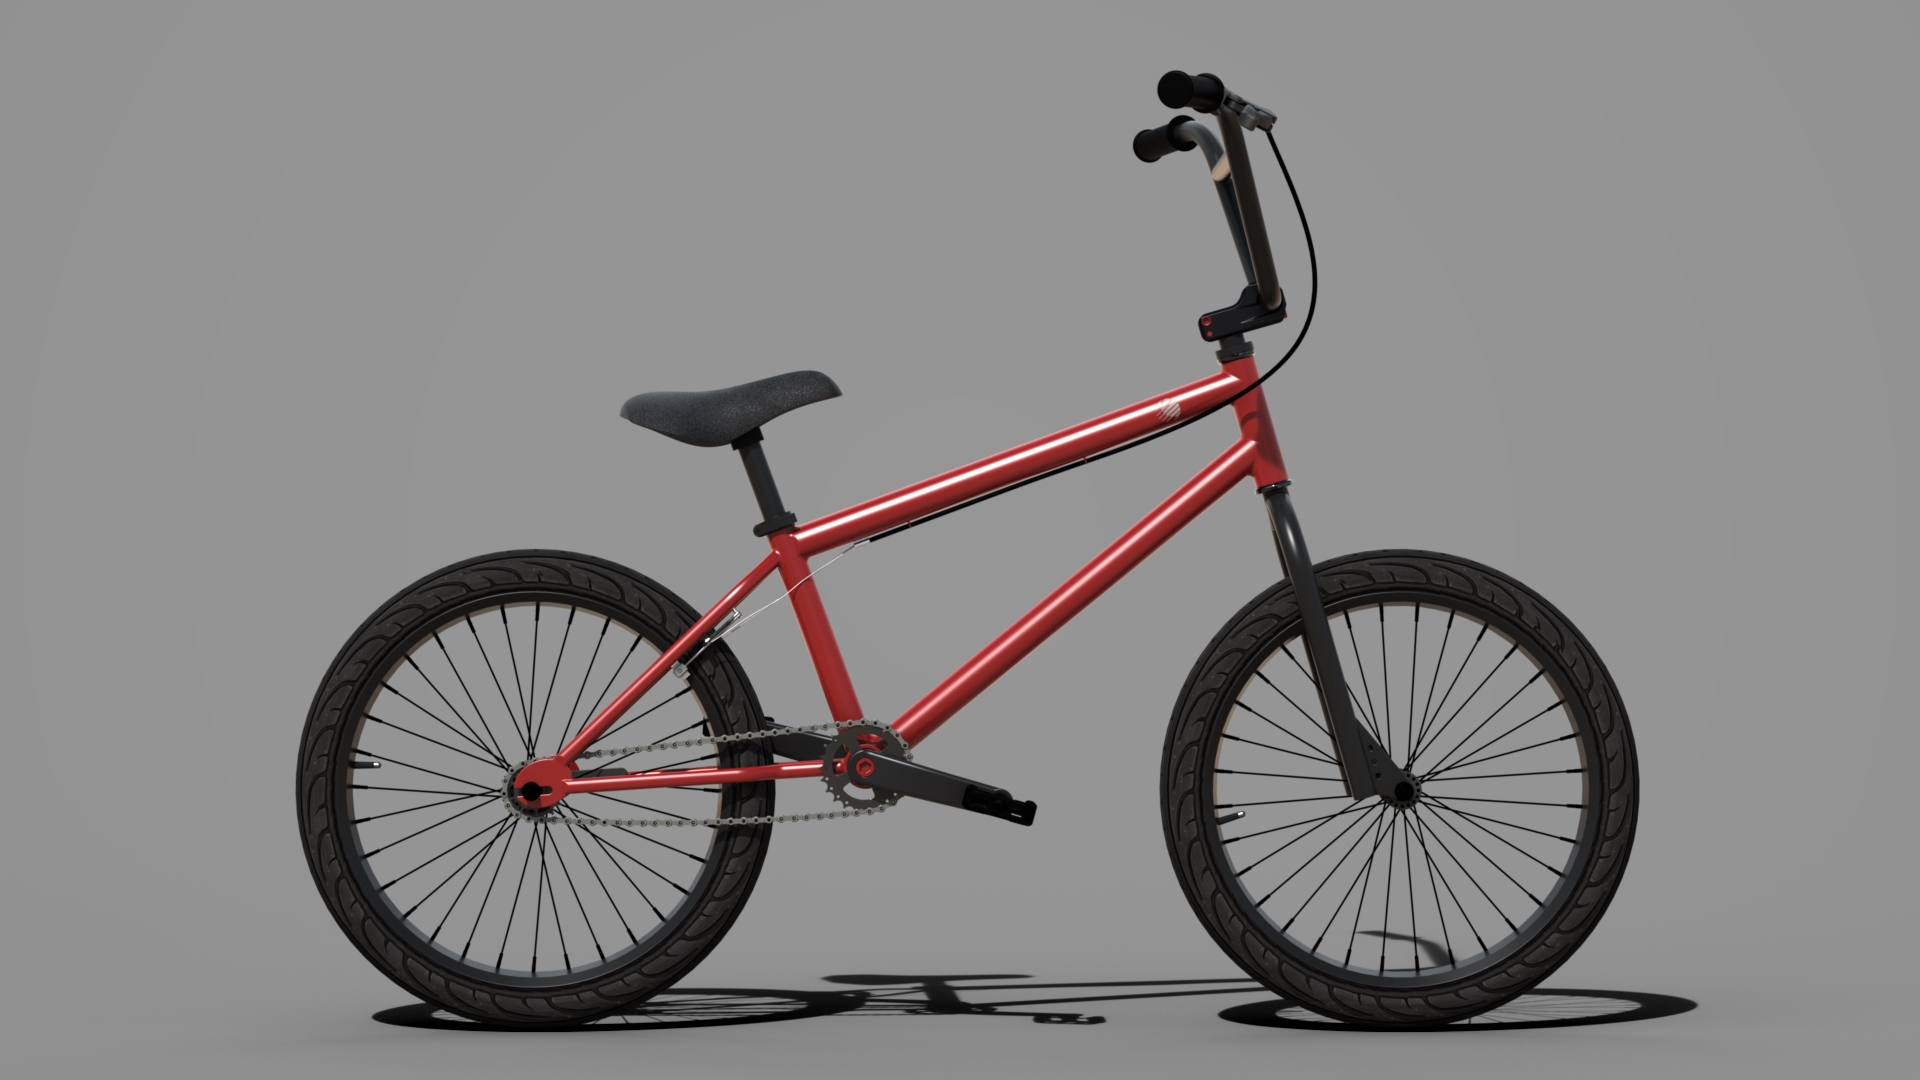 Bike | Photo-Realistic Rendering